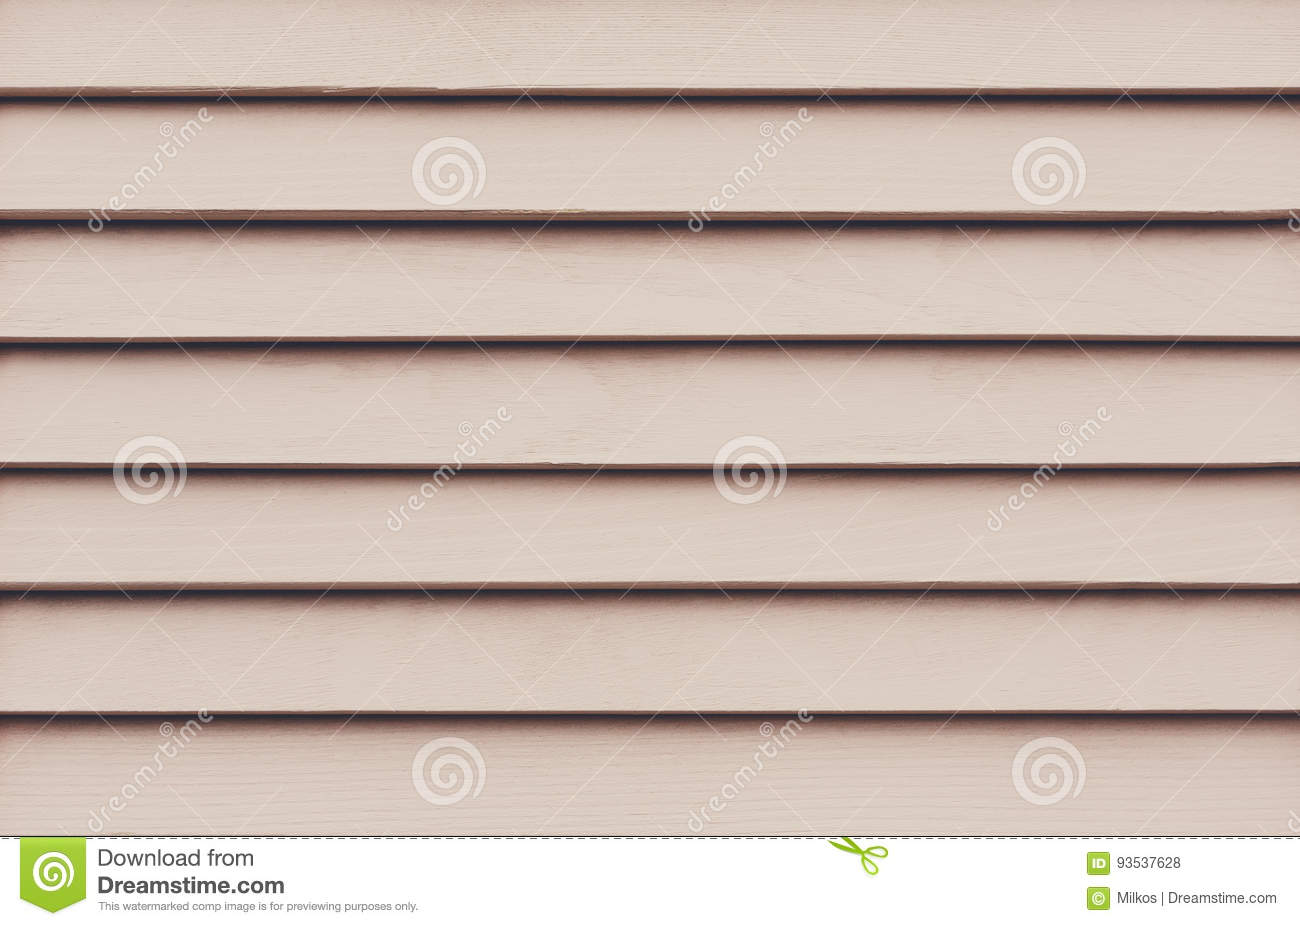 Kiln dried wooden lumber texture background painted pine furniture surface timber hardwood wall